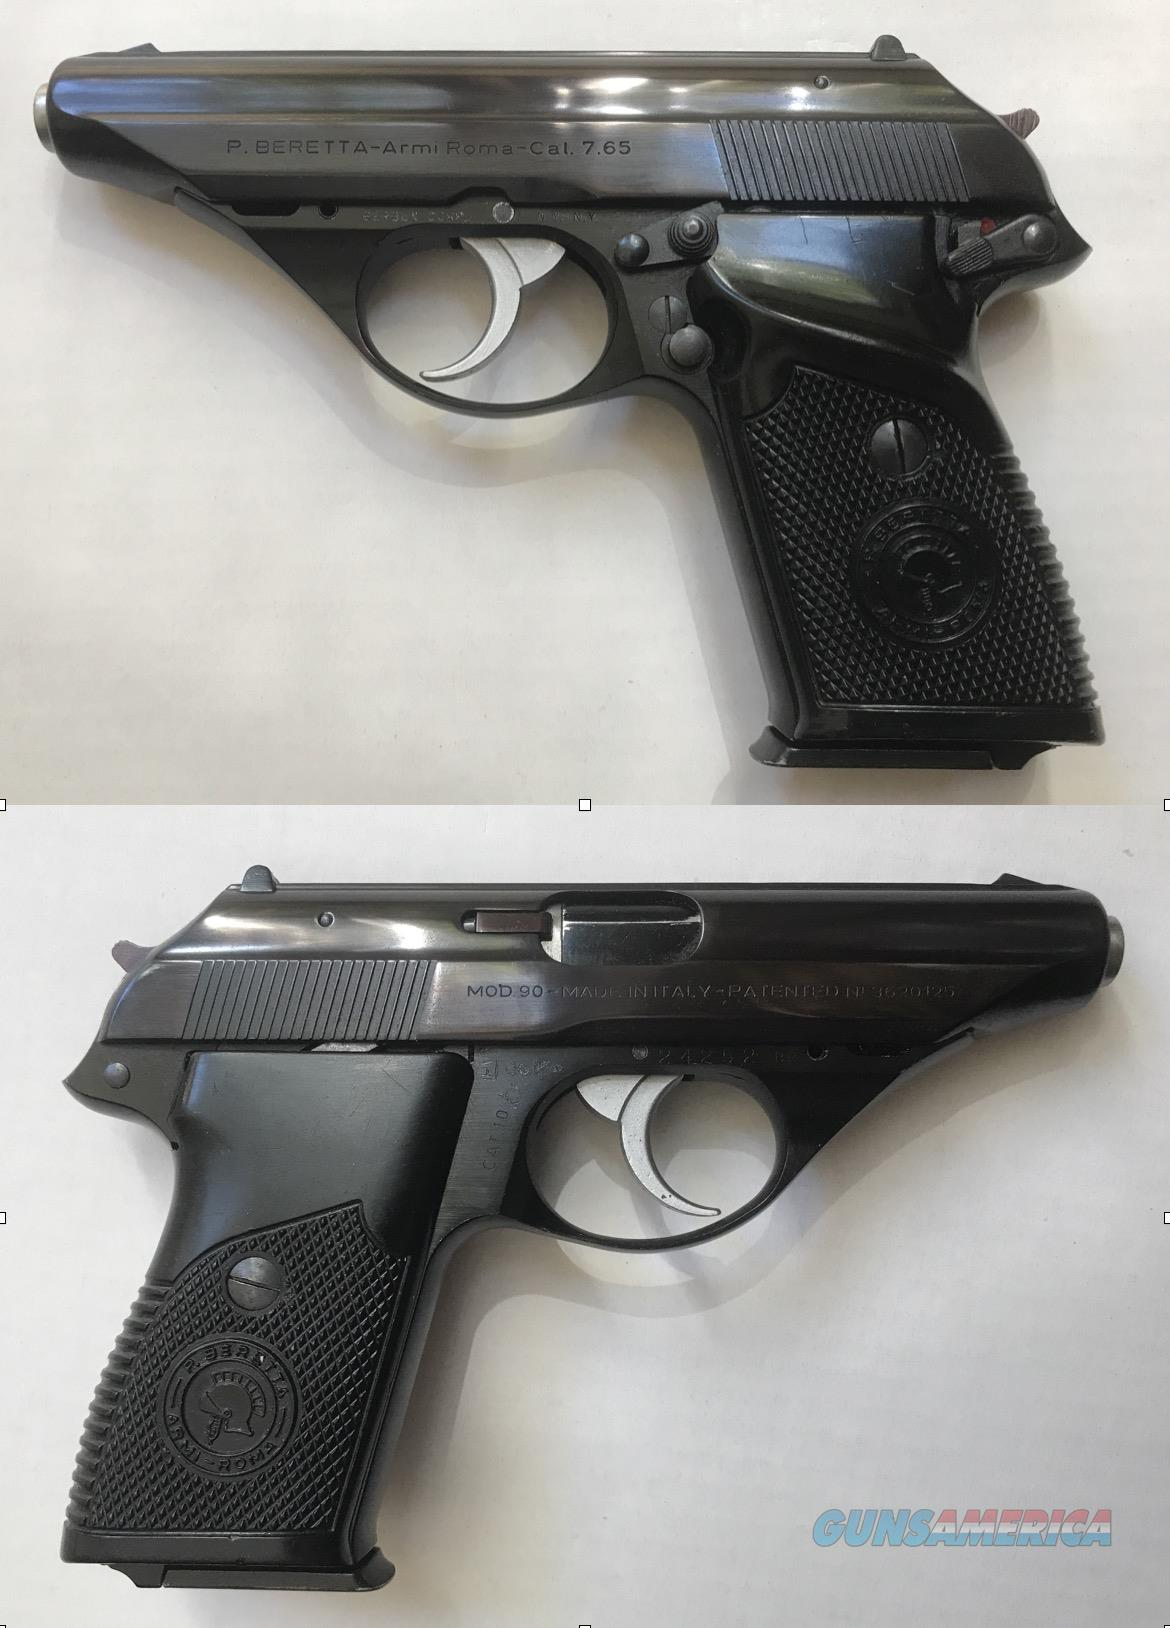 Beretta Model 90 Roma 7.65mm .32acp scarce  Guns > Pistols > Beretta Pistols > Rare & Collectible